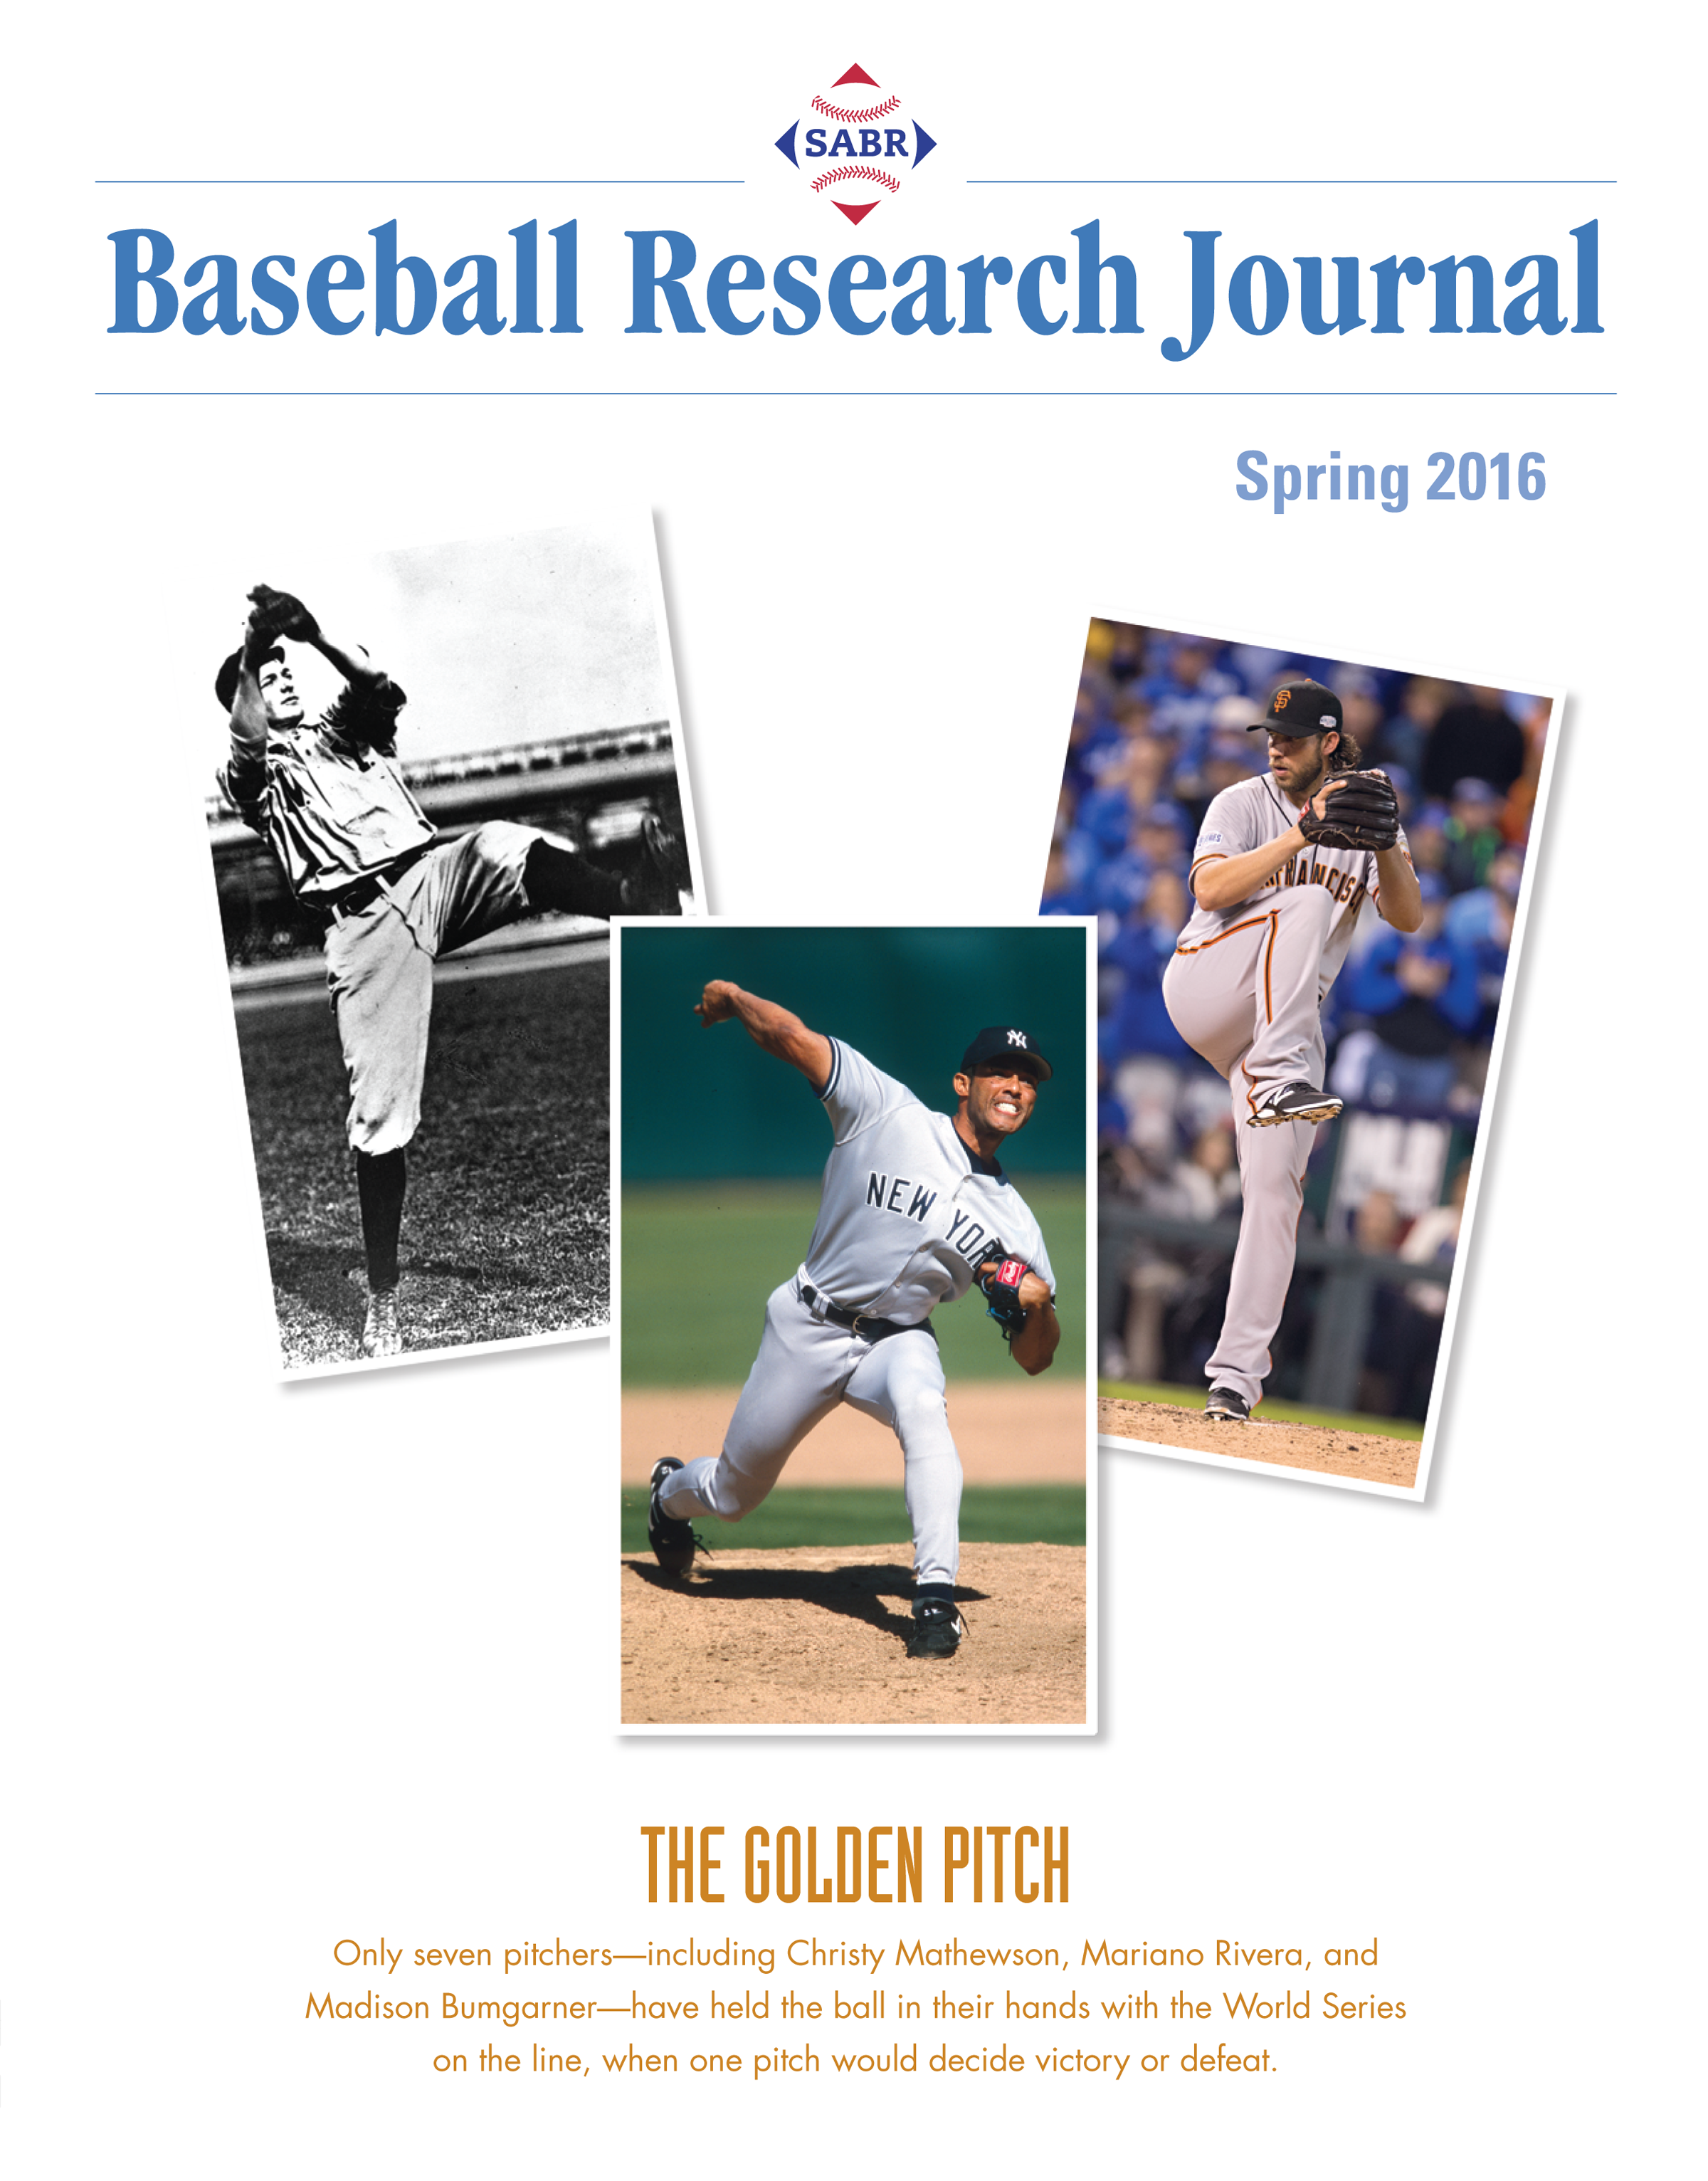 an essay on the society for american baseball research These sample essay outlines will help your students organize and format their ideas before writing an essay or research paper for language arts  baseball in the.